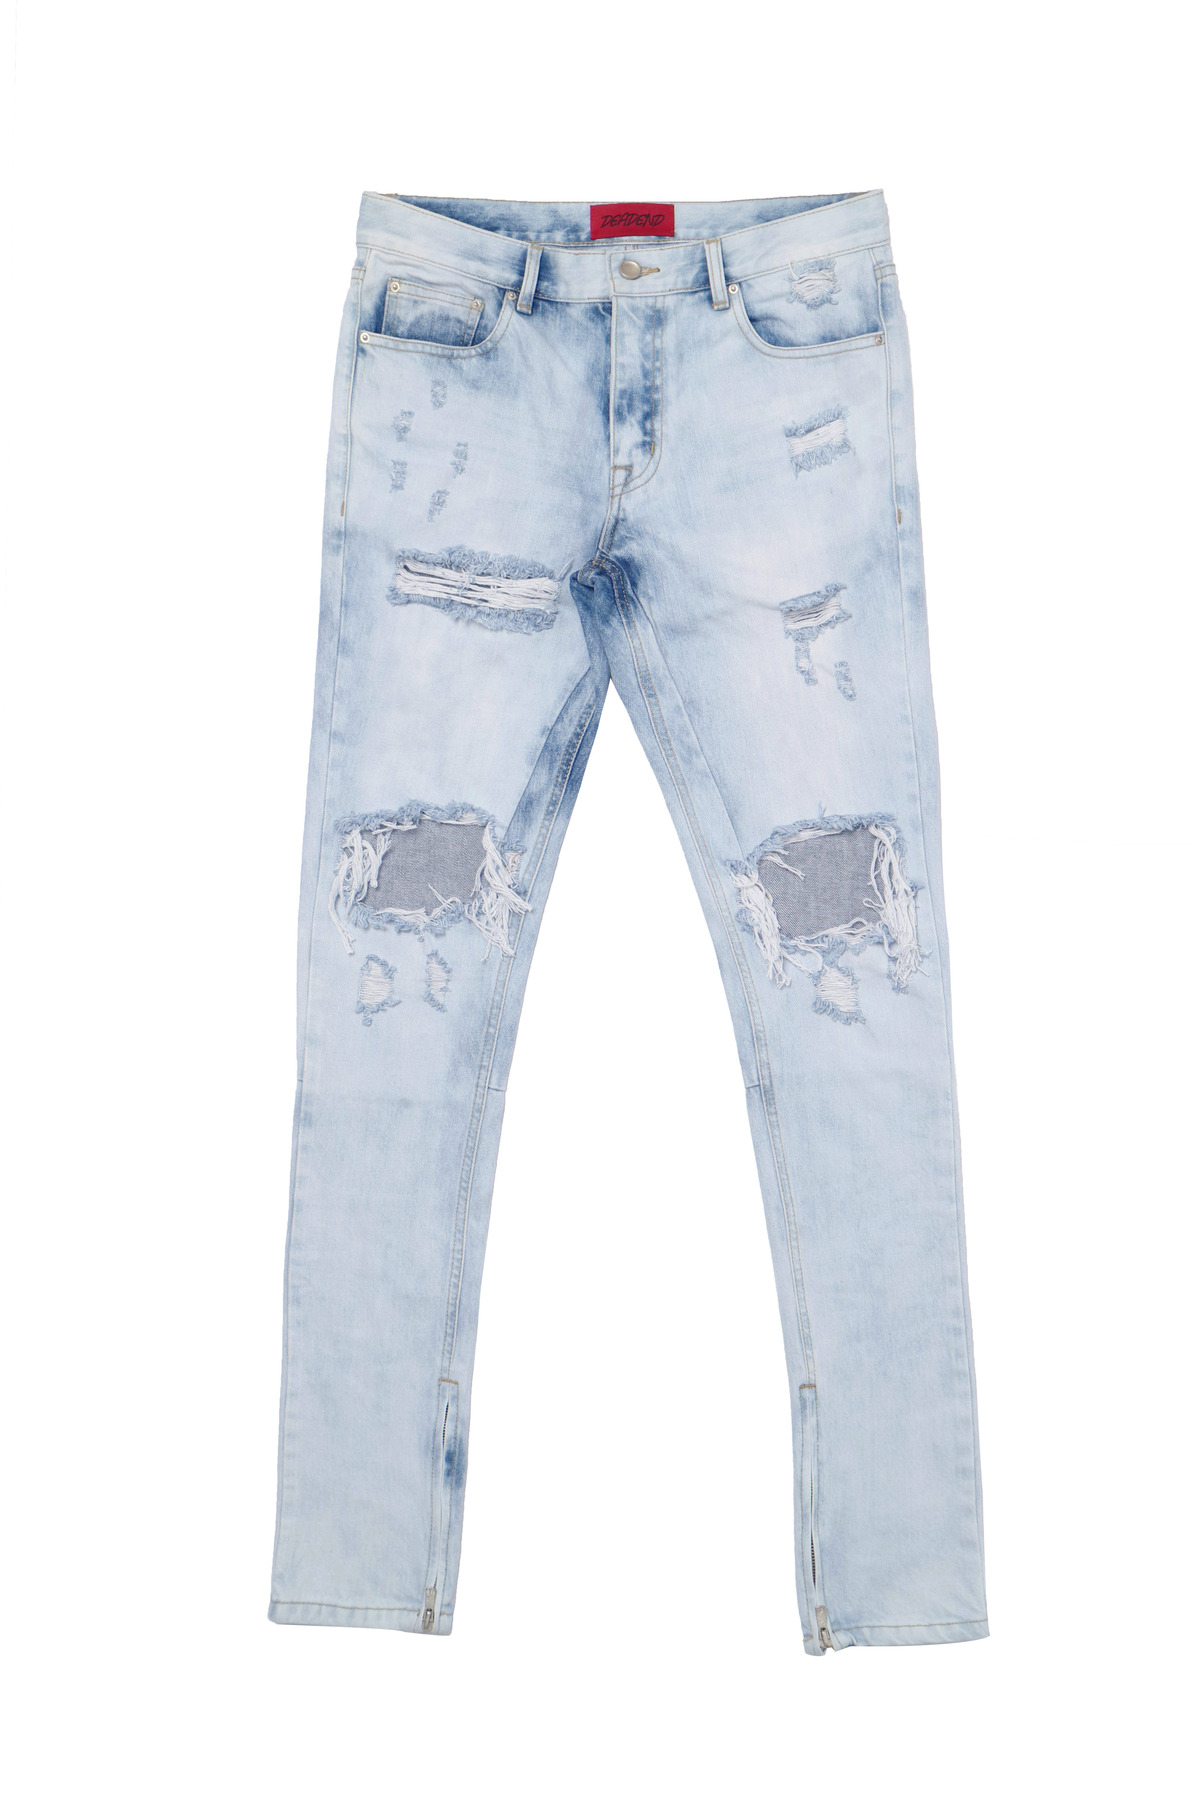 LIGHT BLUE ZIPPER DENIM JEANS